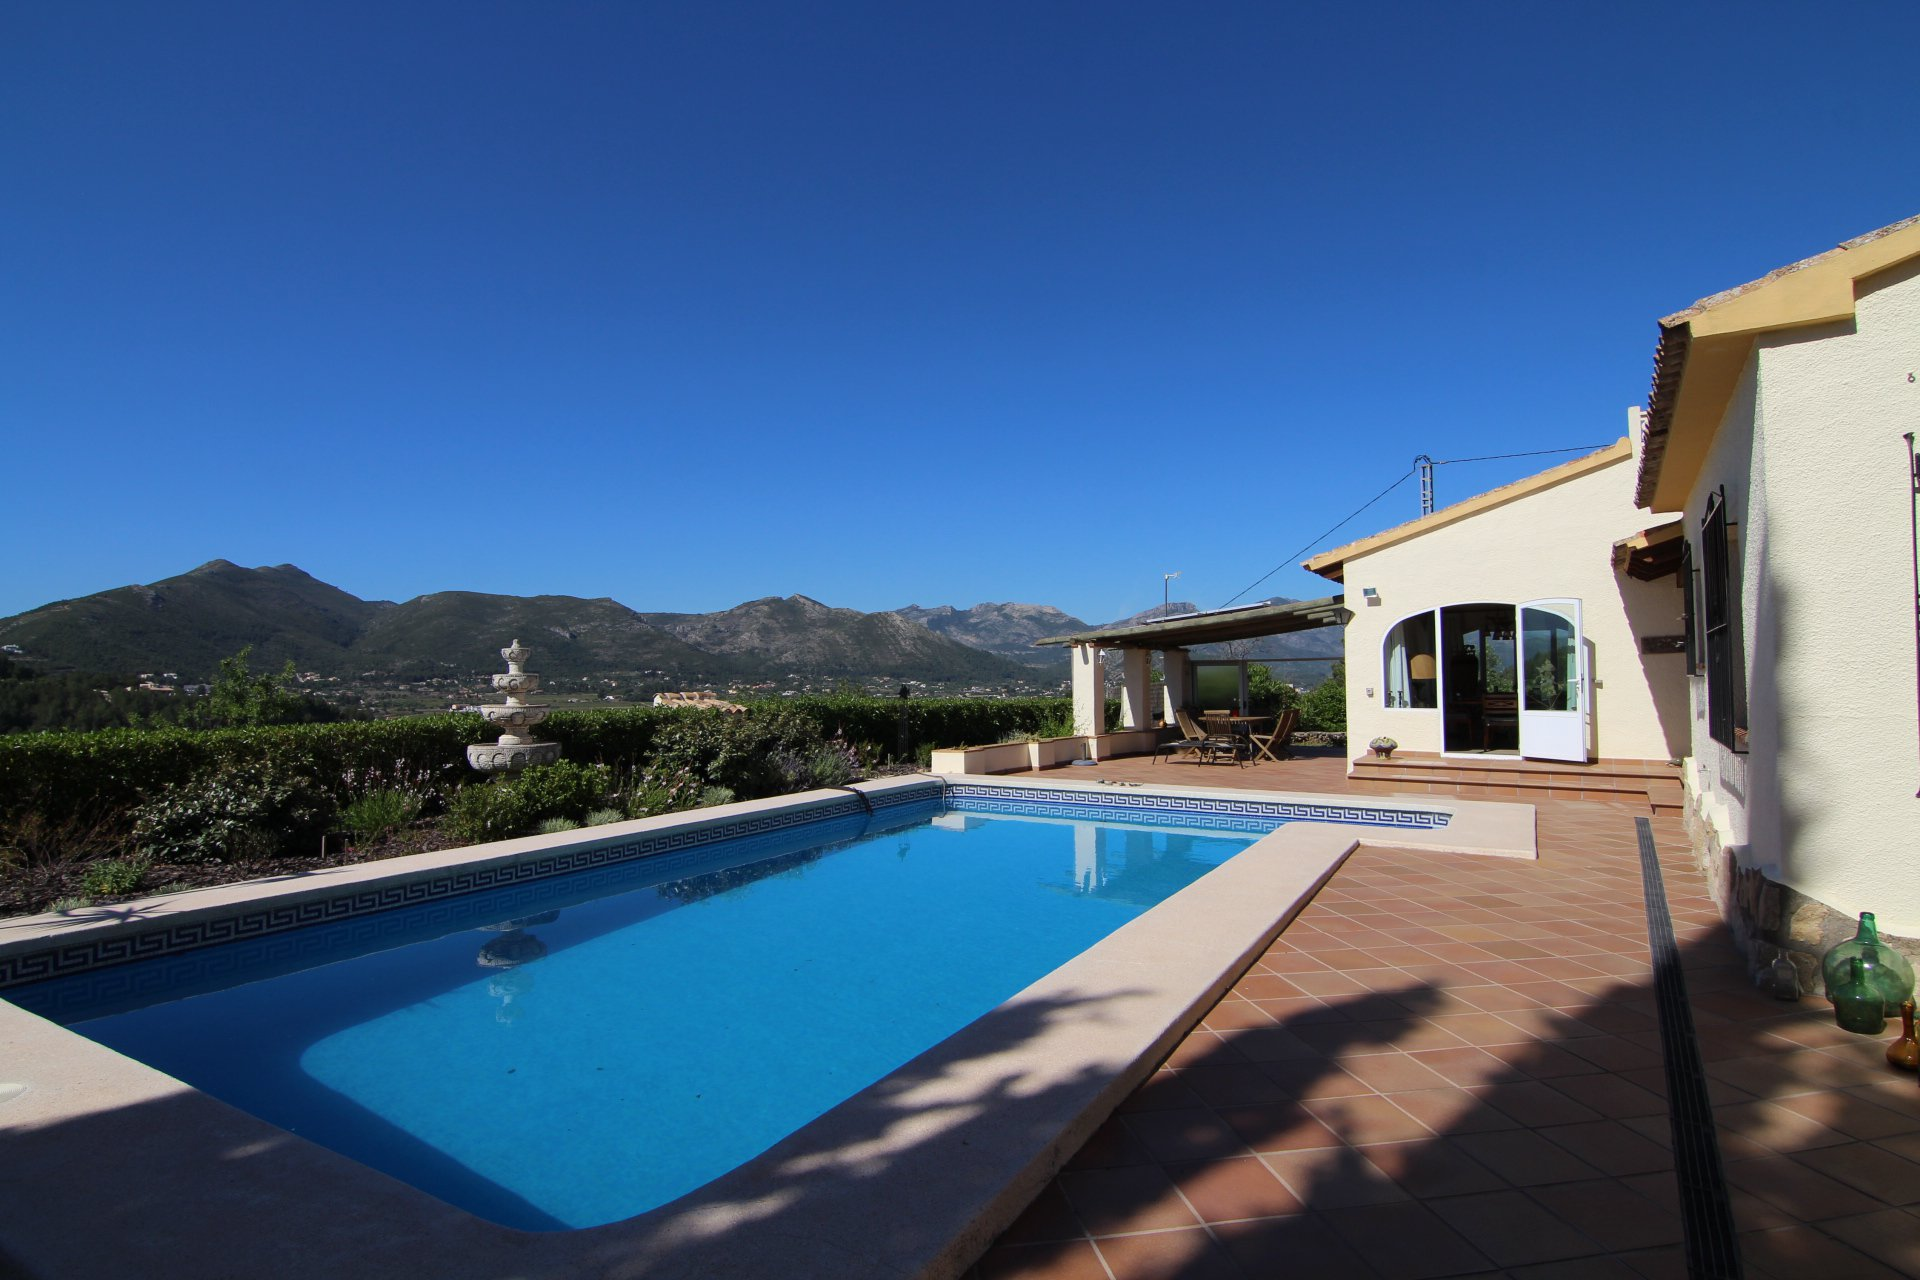 5-bedroom finca in Lliber